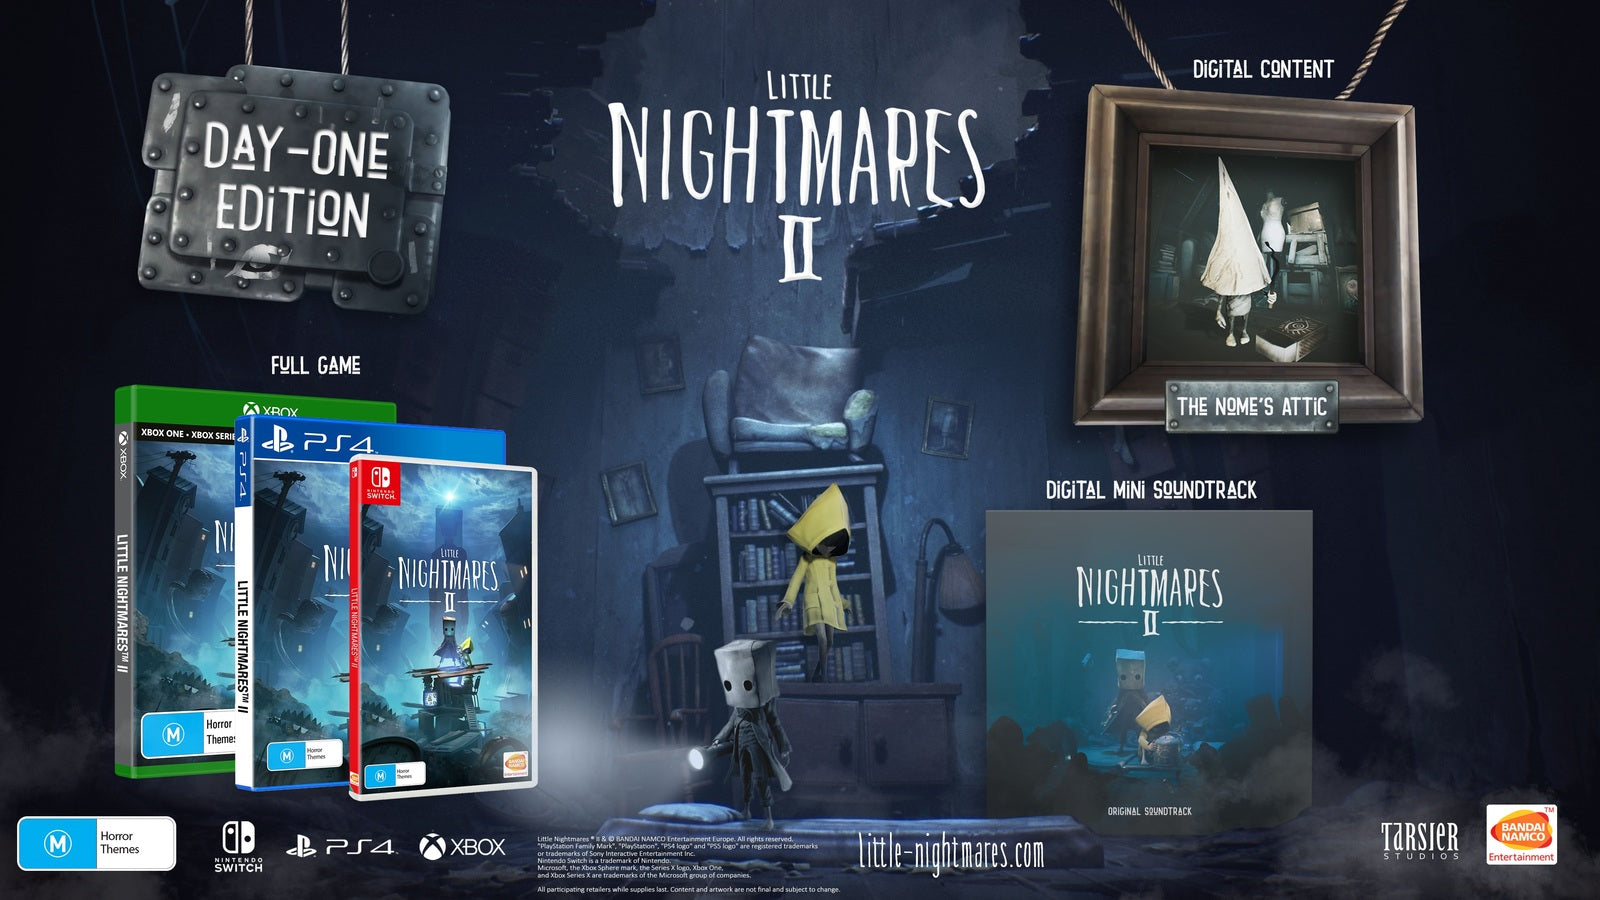 Little Nightmares II Day One Edition - Nintendo Switch